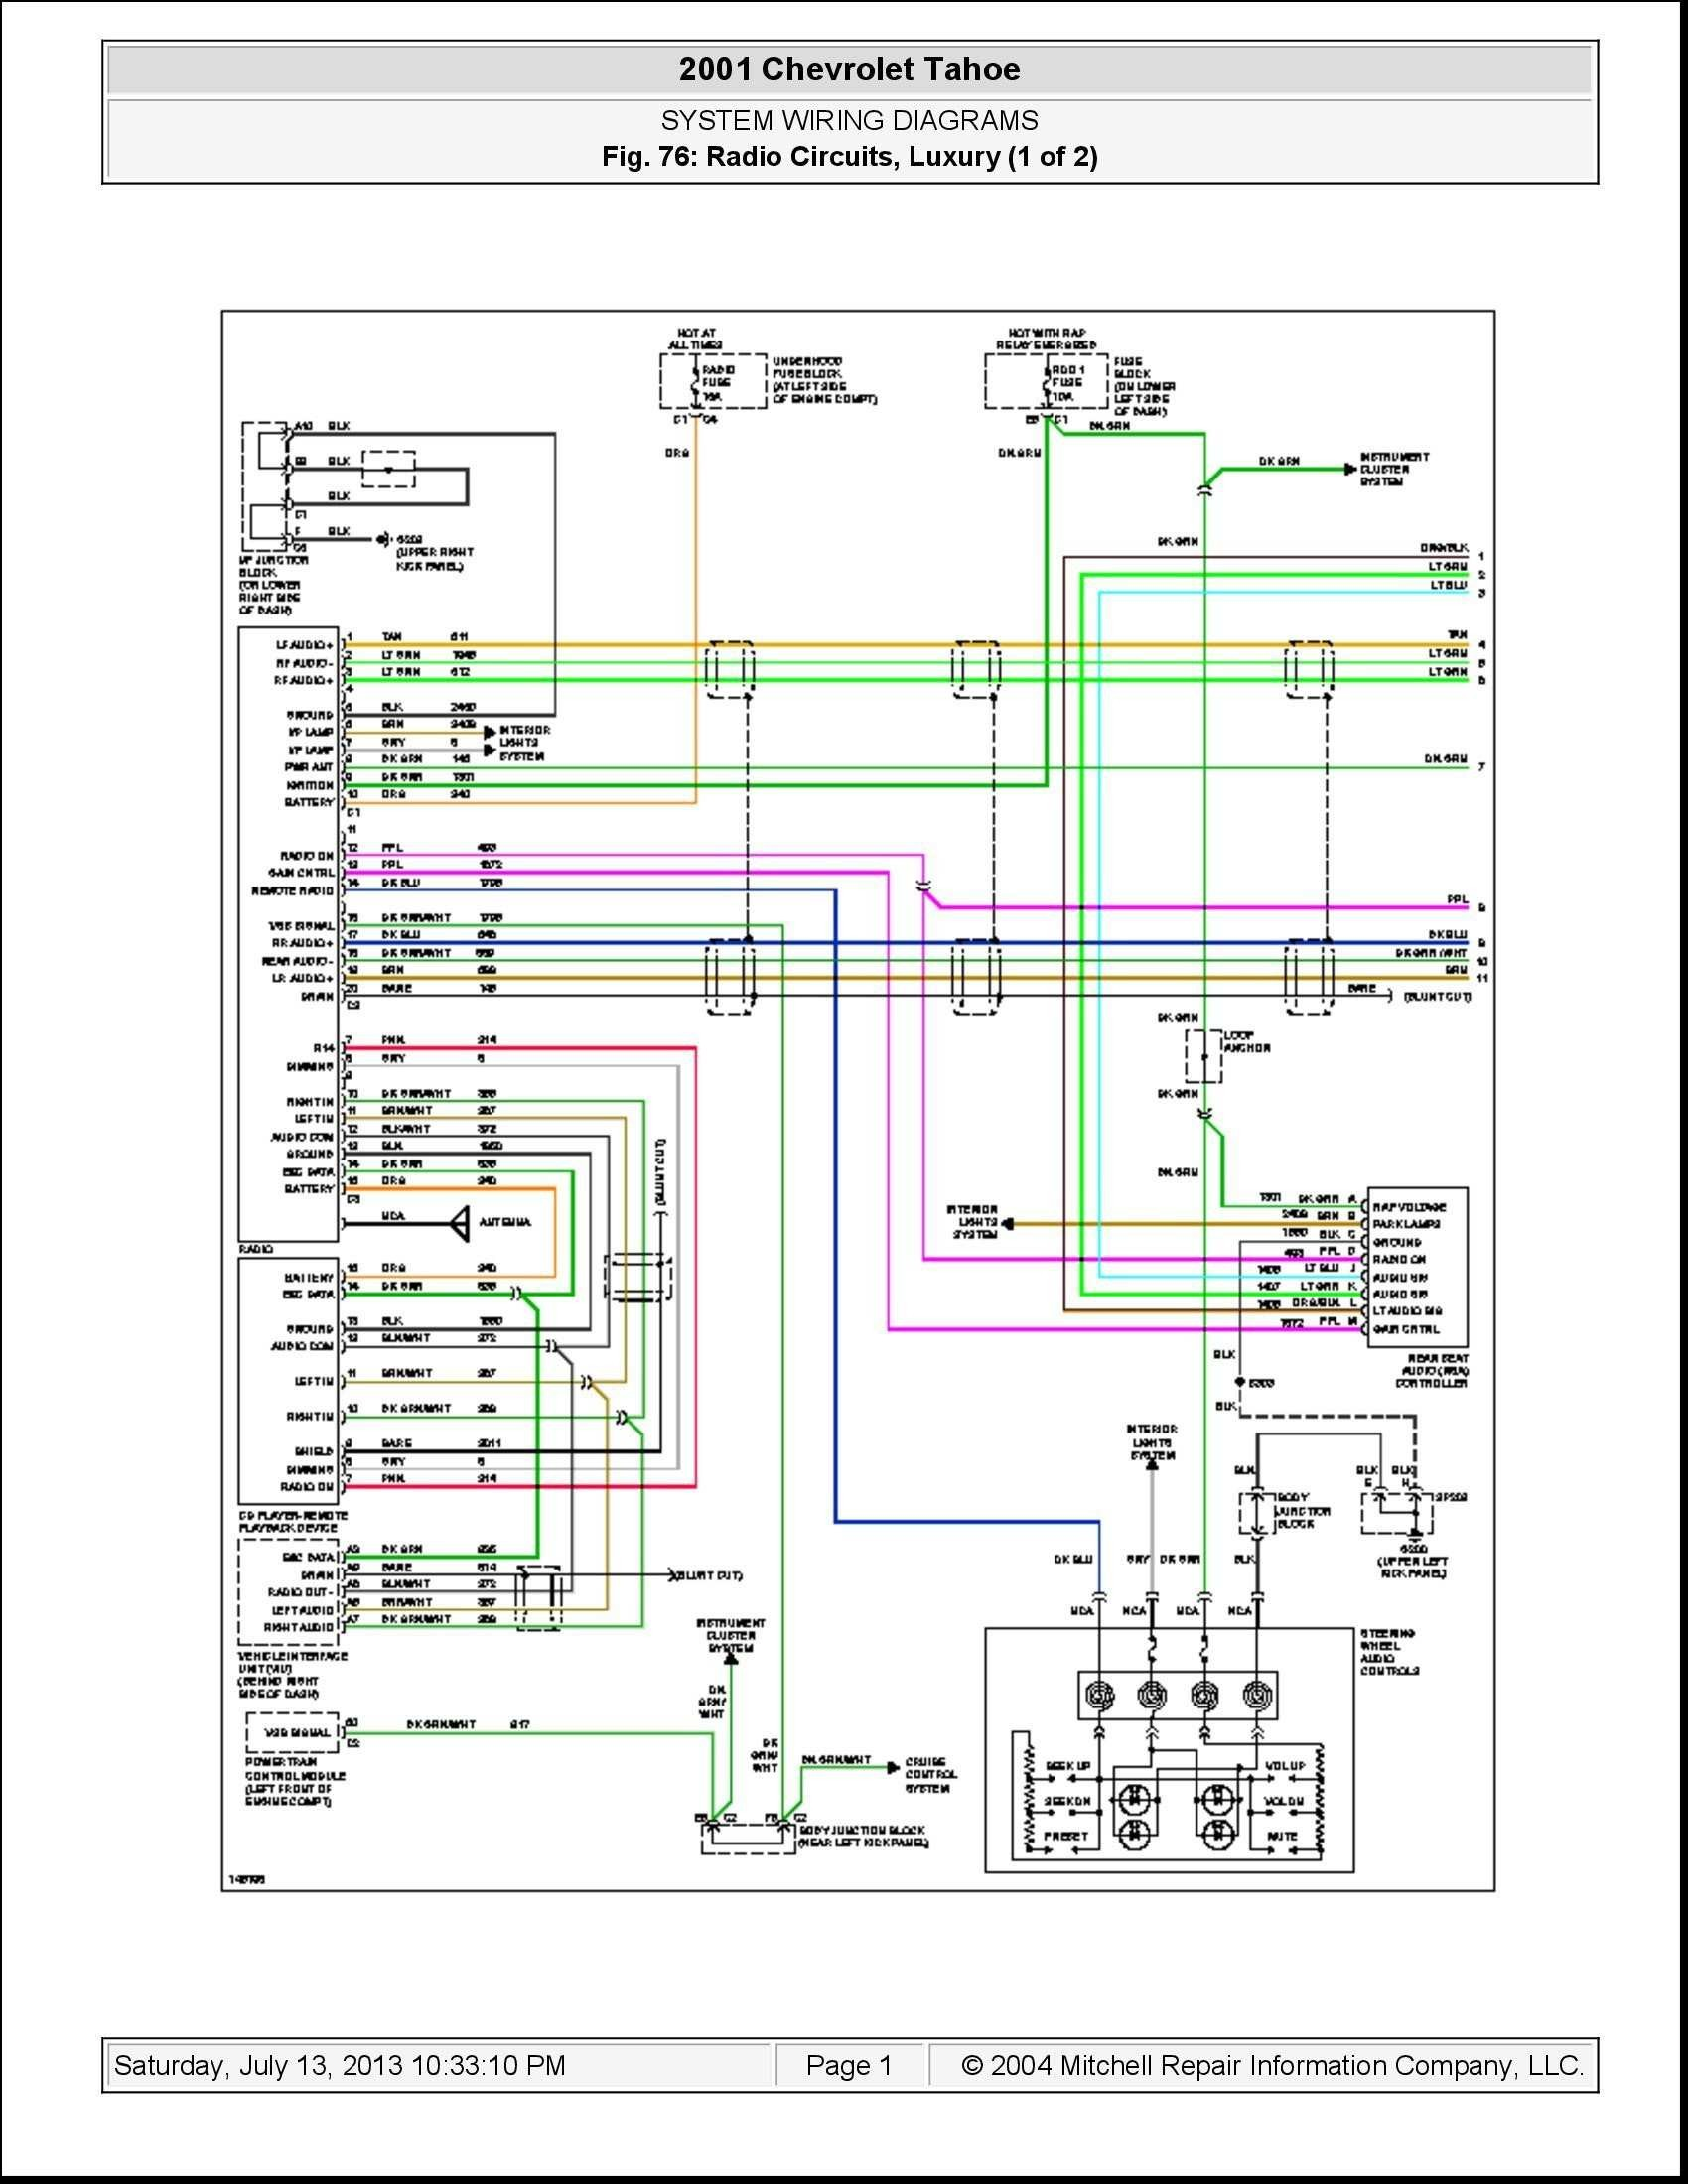 2005 Chevy Equinox Wiring Diagram from mainetreasurechest.com